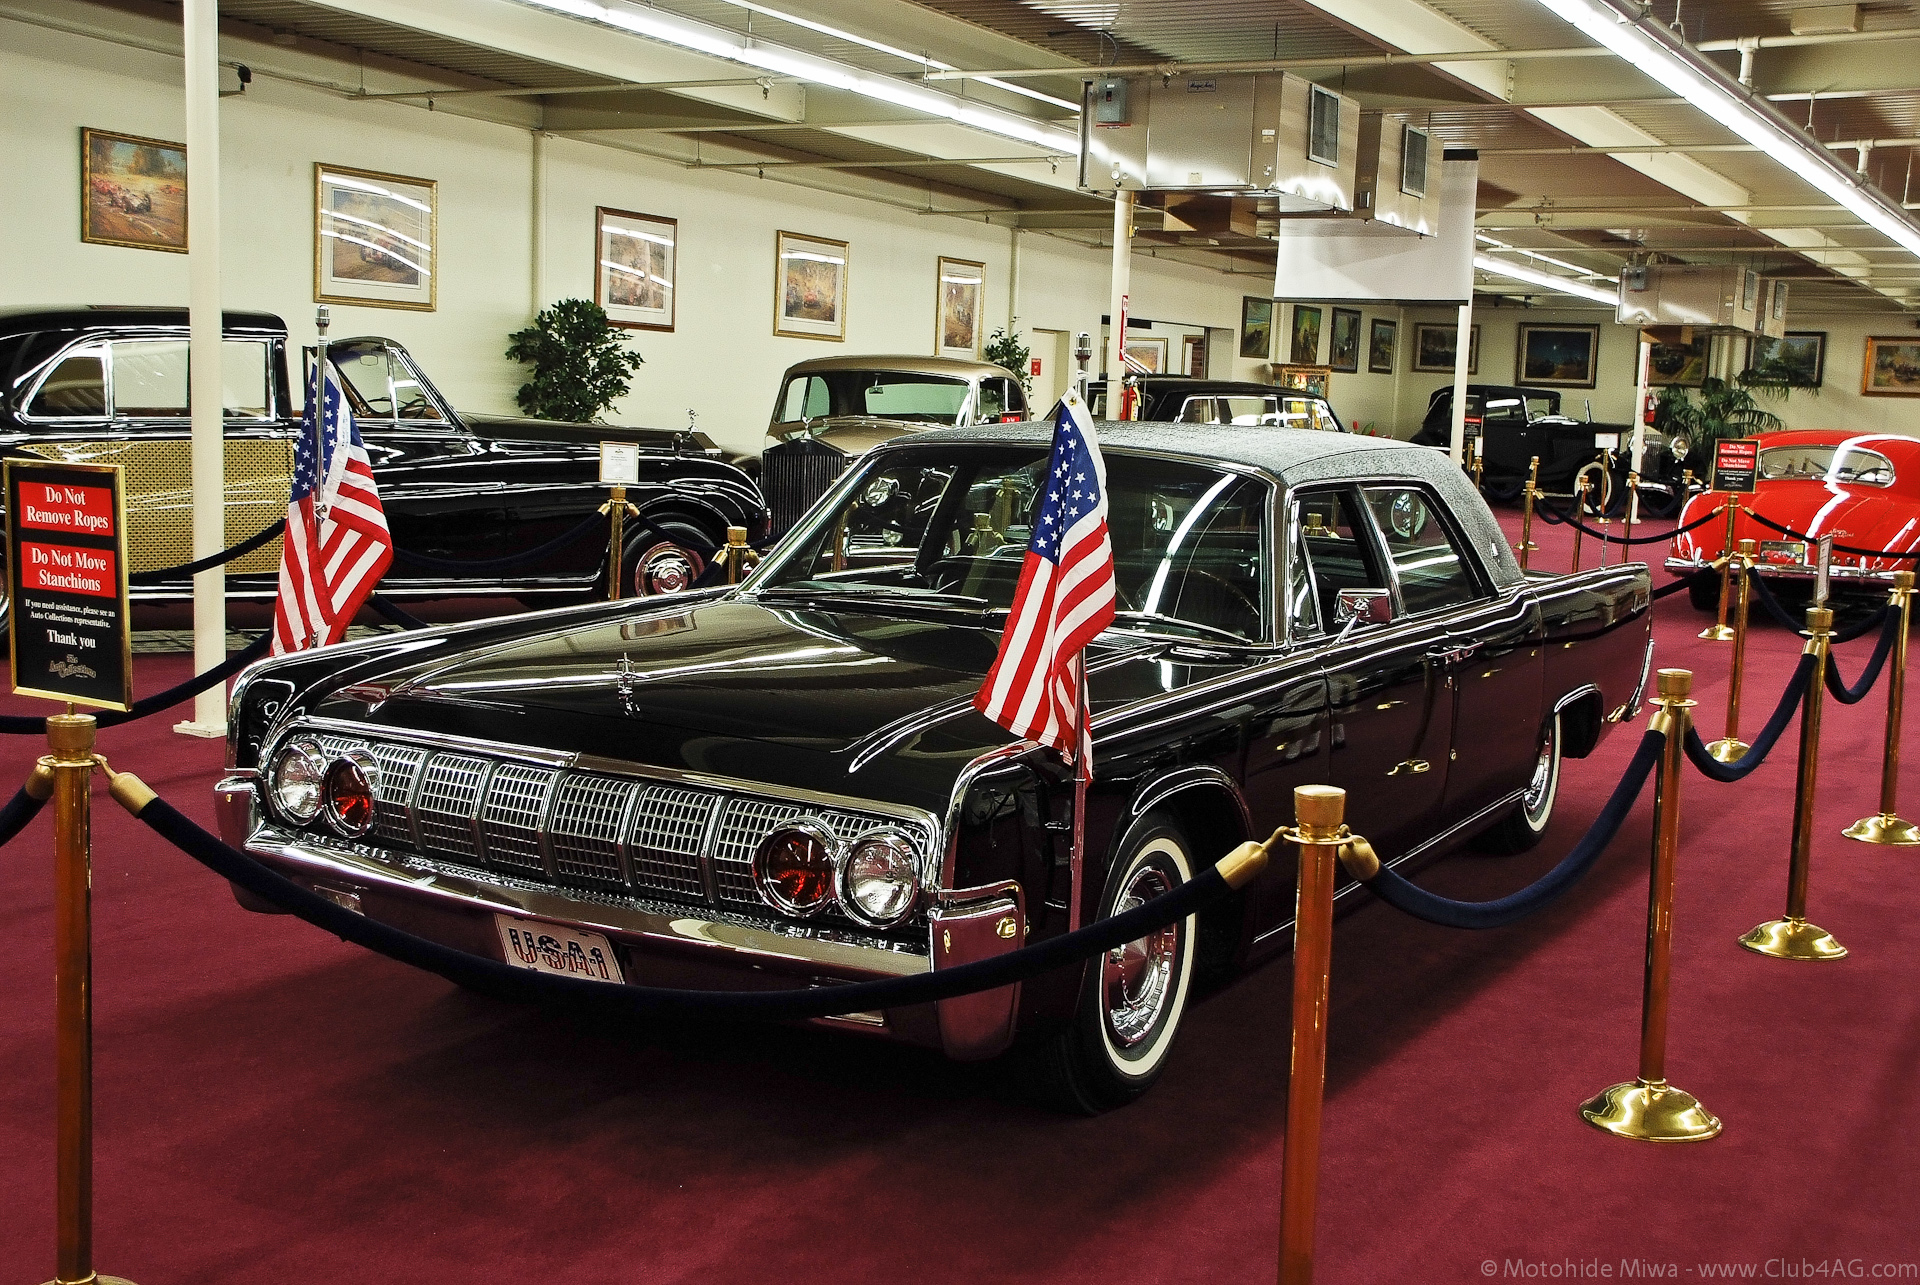 File 2017 11 2 Imperial Palace Harrahs Auto Collection 1 22 Flickr